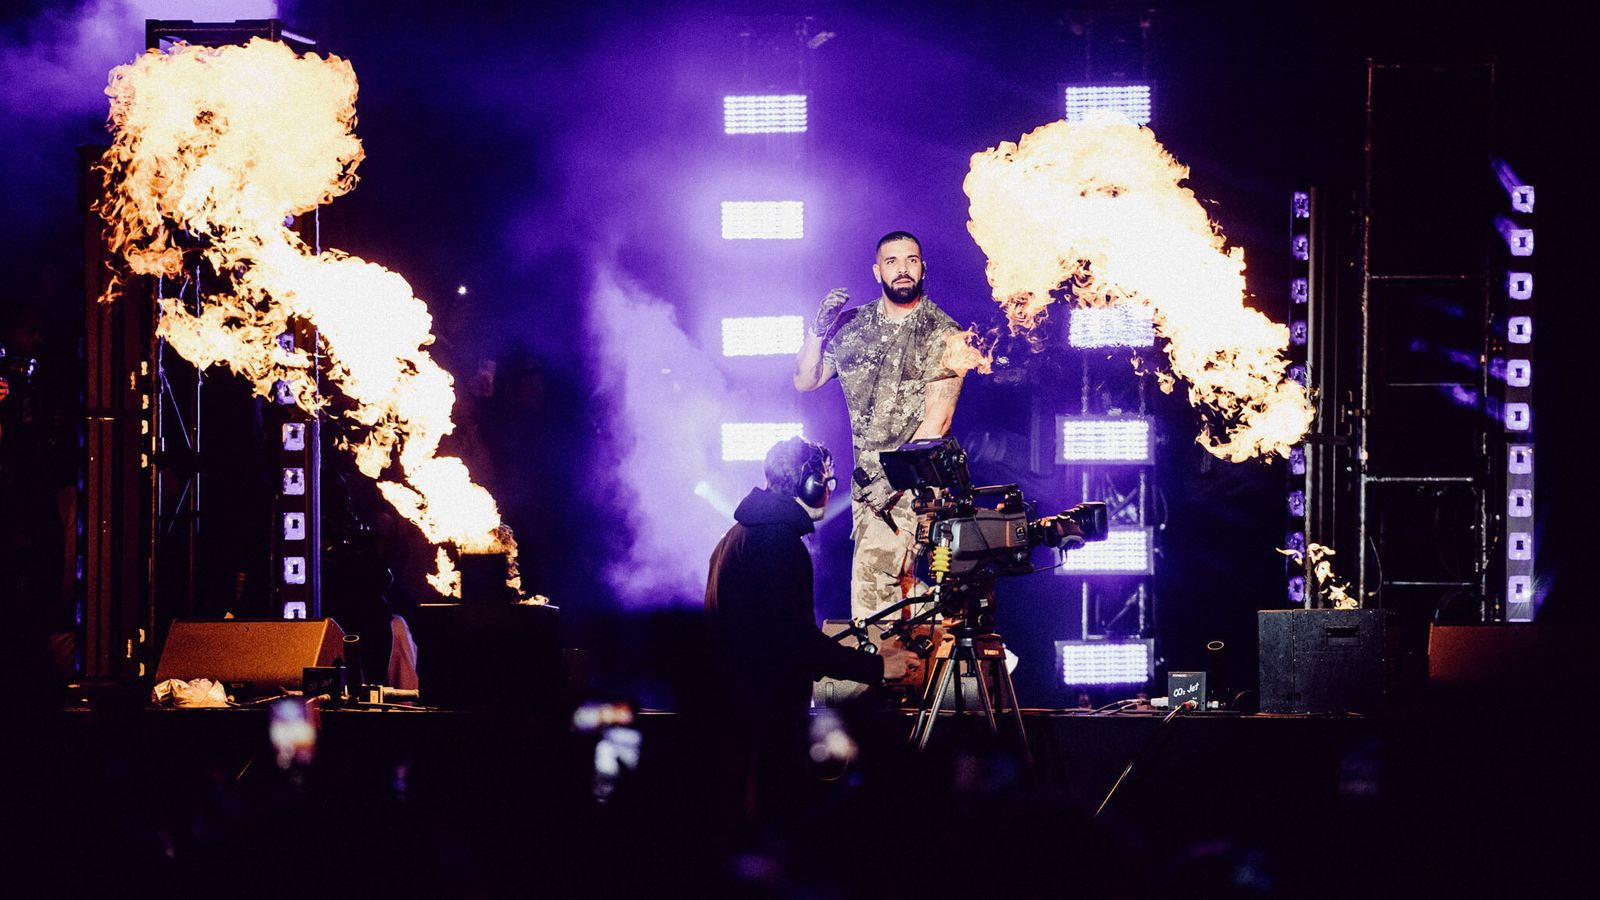 Wireless Festival: Drake makes a surprise appearance – performing live for first time since pandemic began